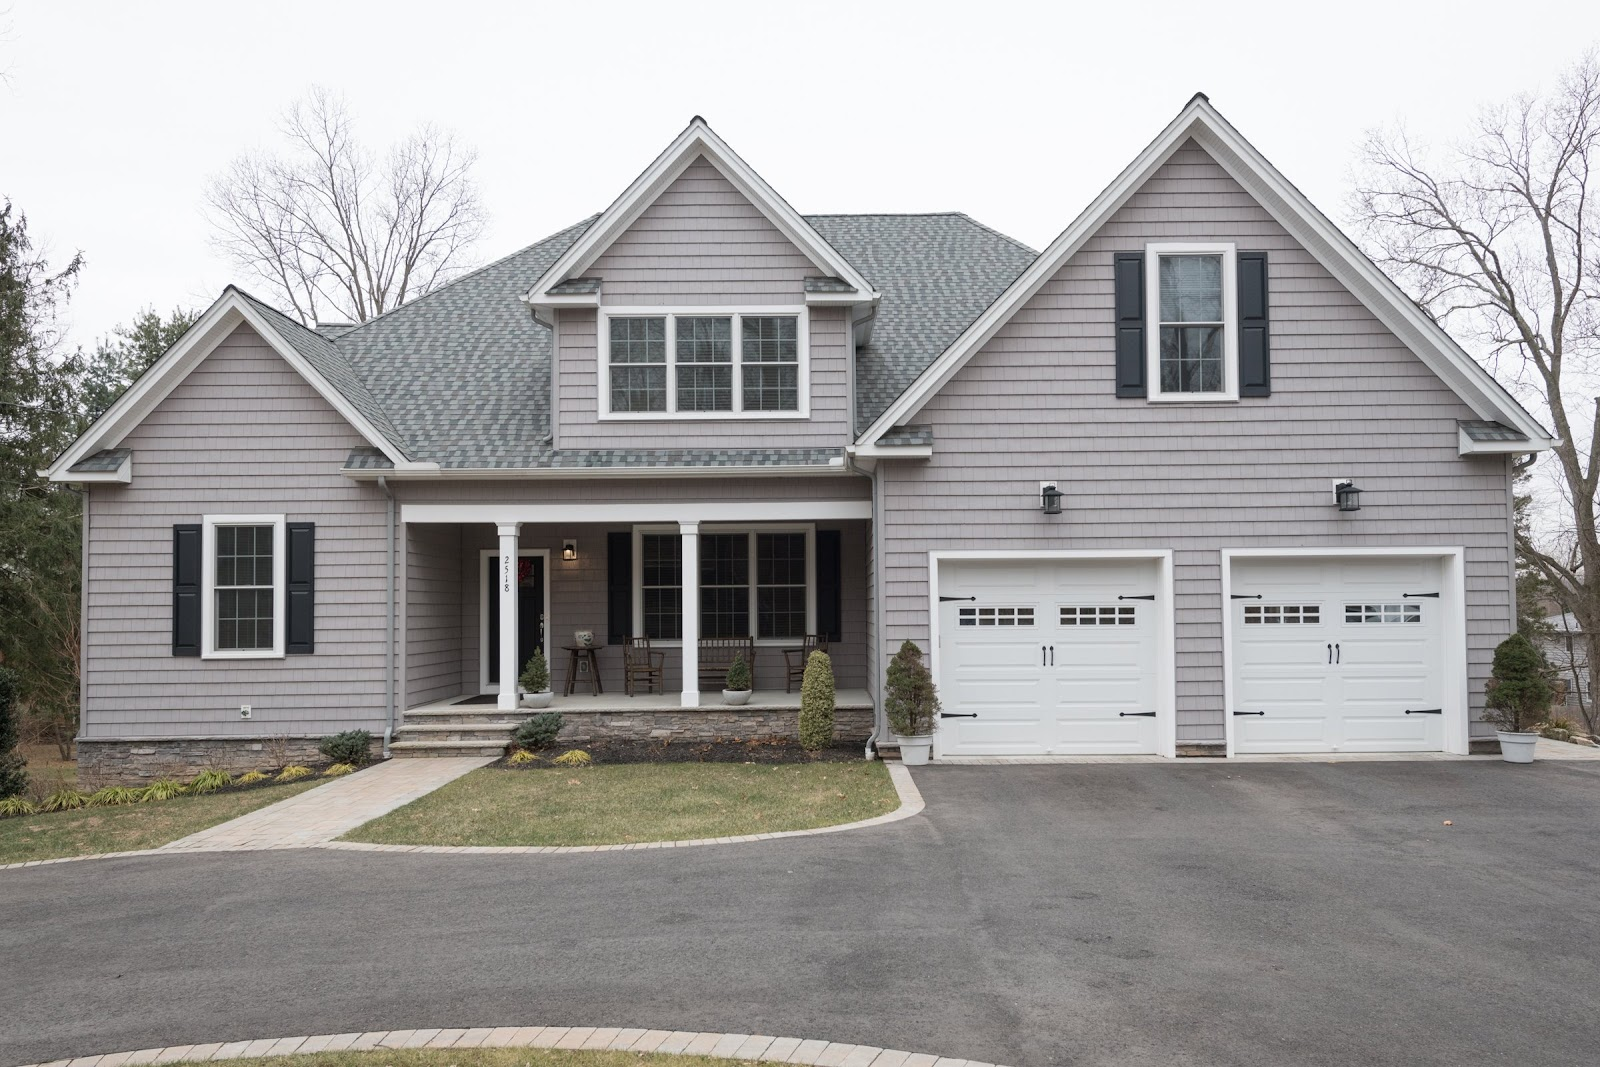 grey paneled custom built home by GTG builders in new jersey